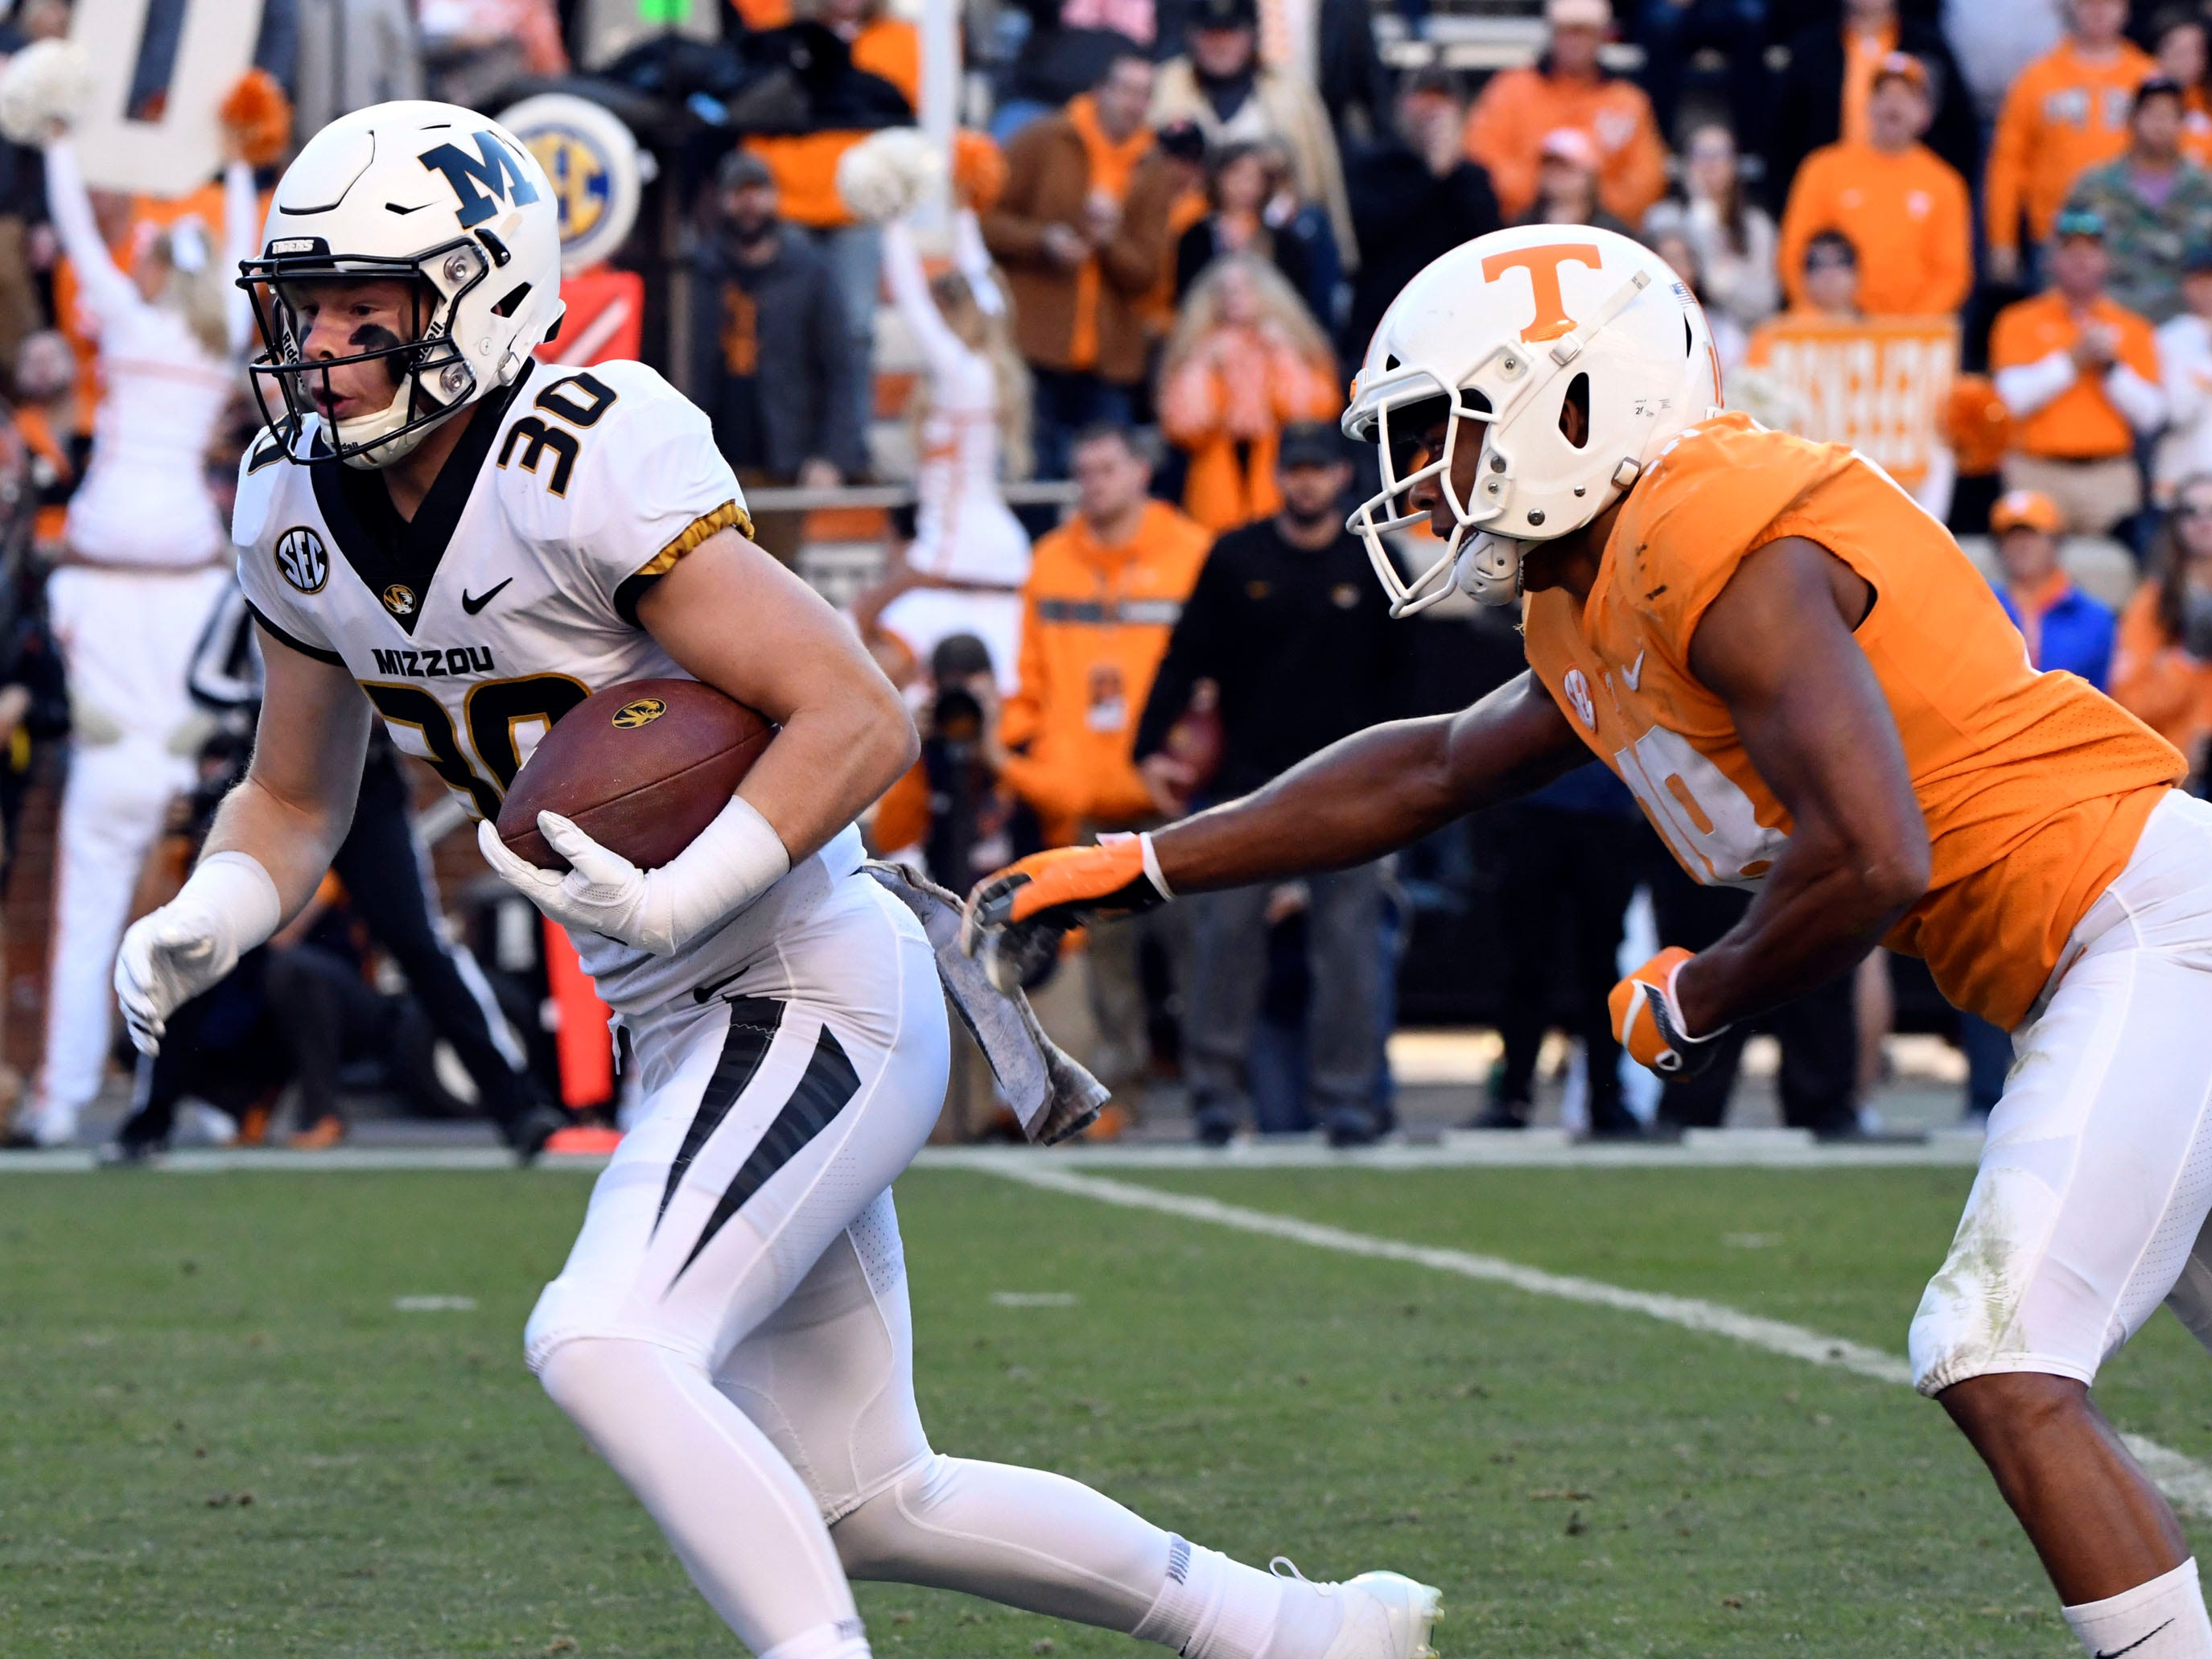 Missouri wide receiver Barrett Banister (30) is pursued by Tennessee defensive back Nigel Warrior (18) during the Tennessee and Missouri football game on Saturday, November 17, 2018.